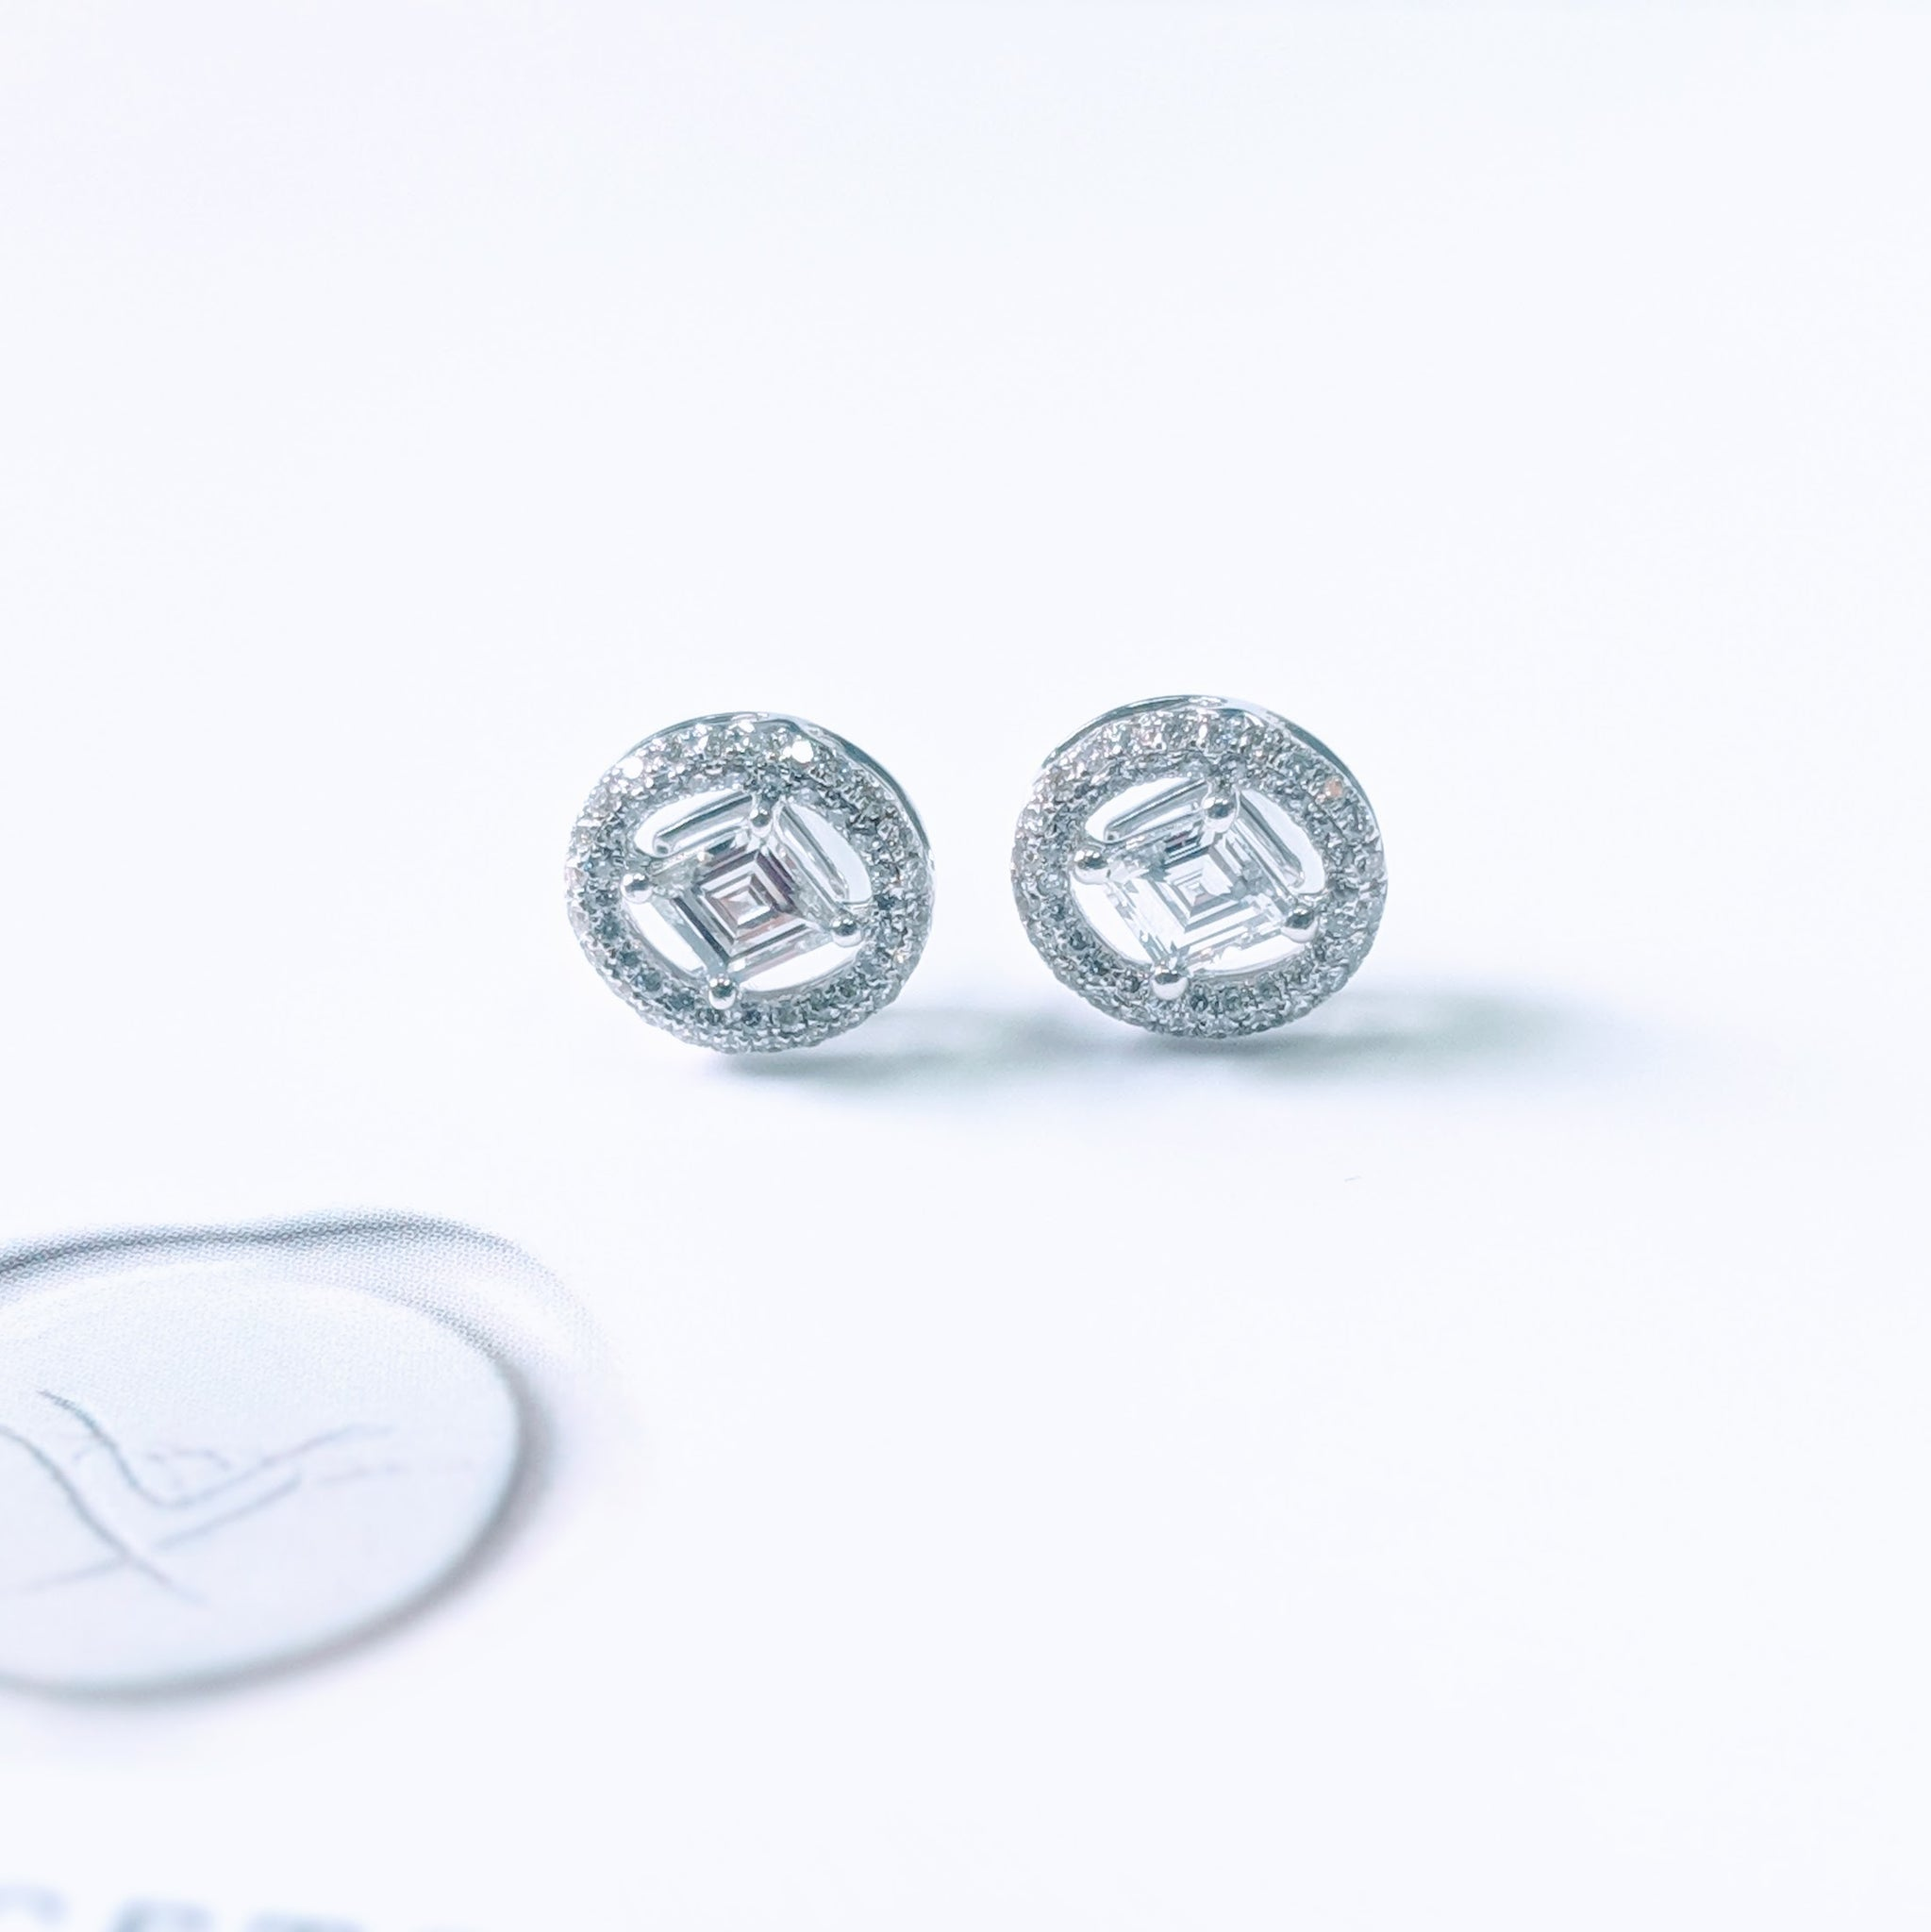 64Facets Earrings with Kite-Shaped Step-Cut Diamonds